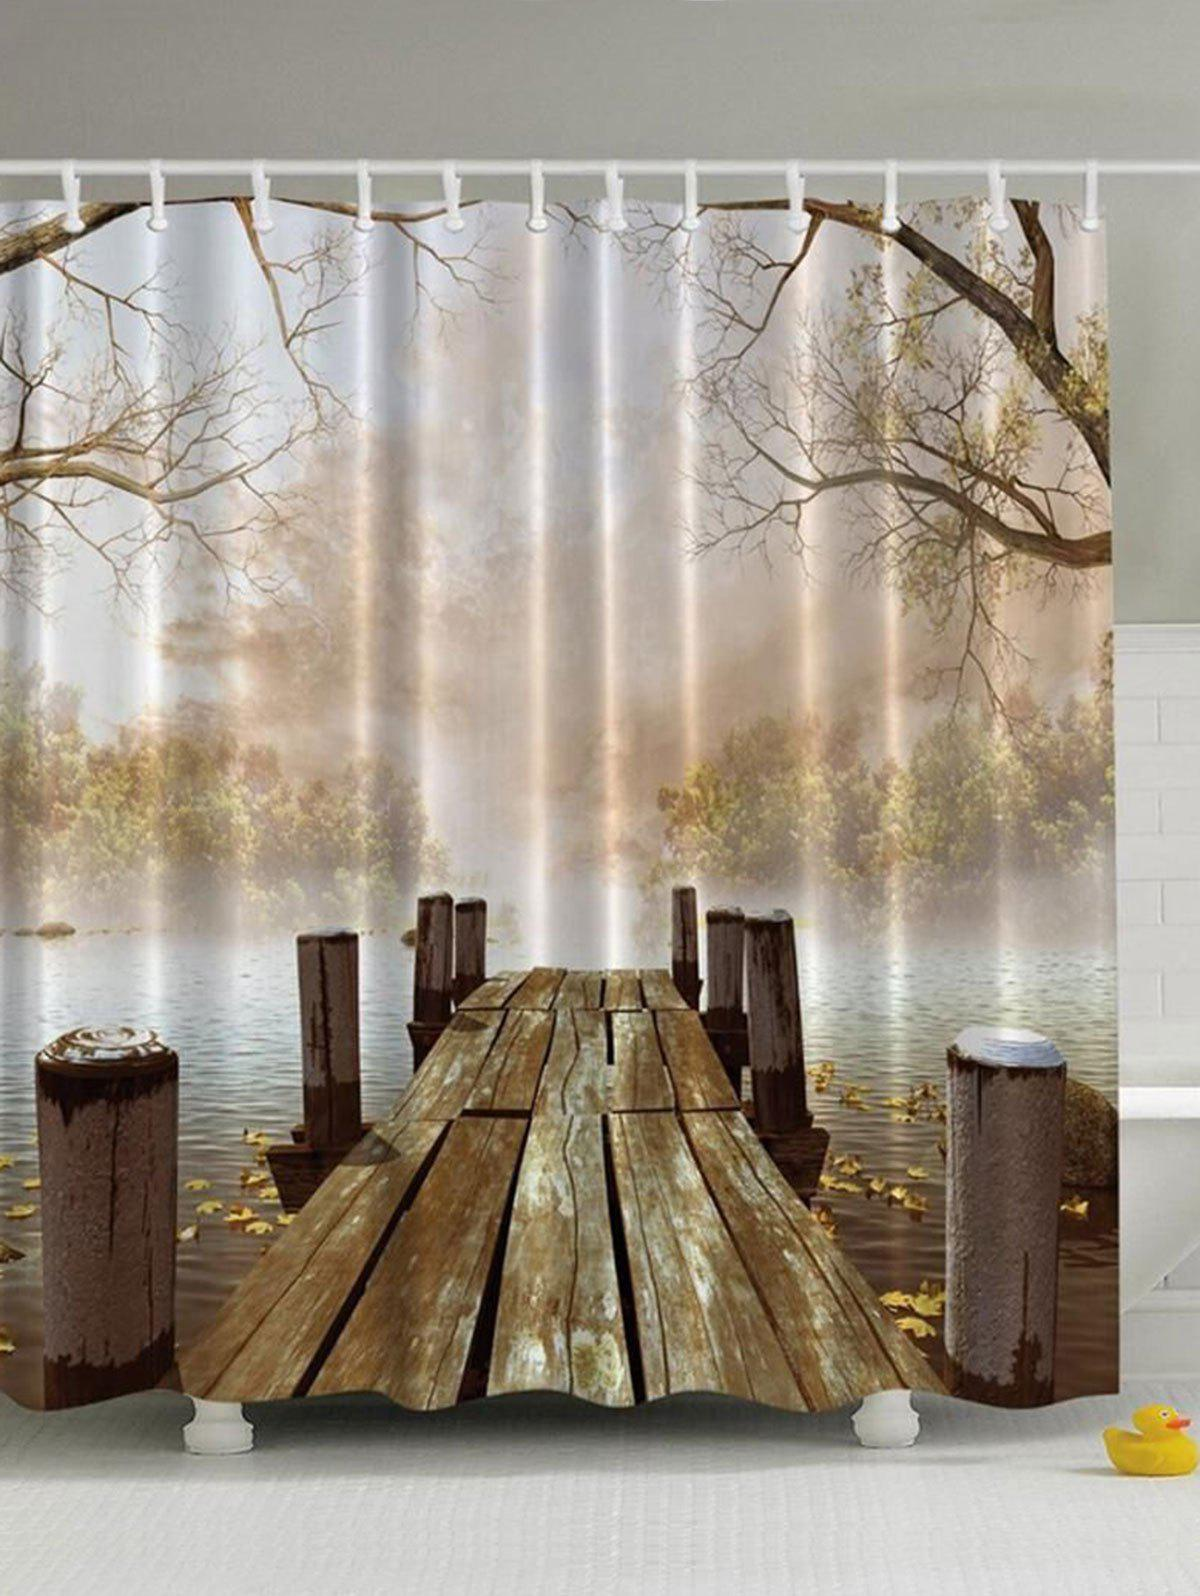 Nature Scenery Waterproof Polyester Shower Curtain nature scenery printed polyester waterproof shower curtain